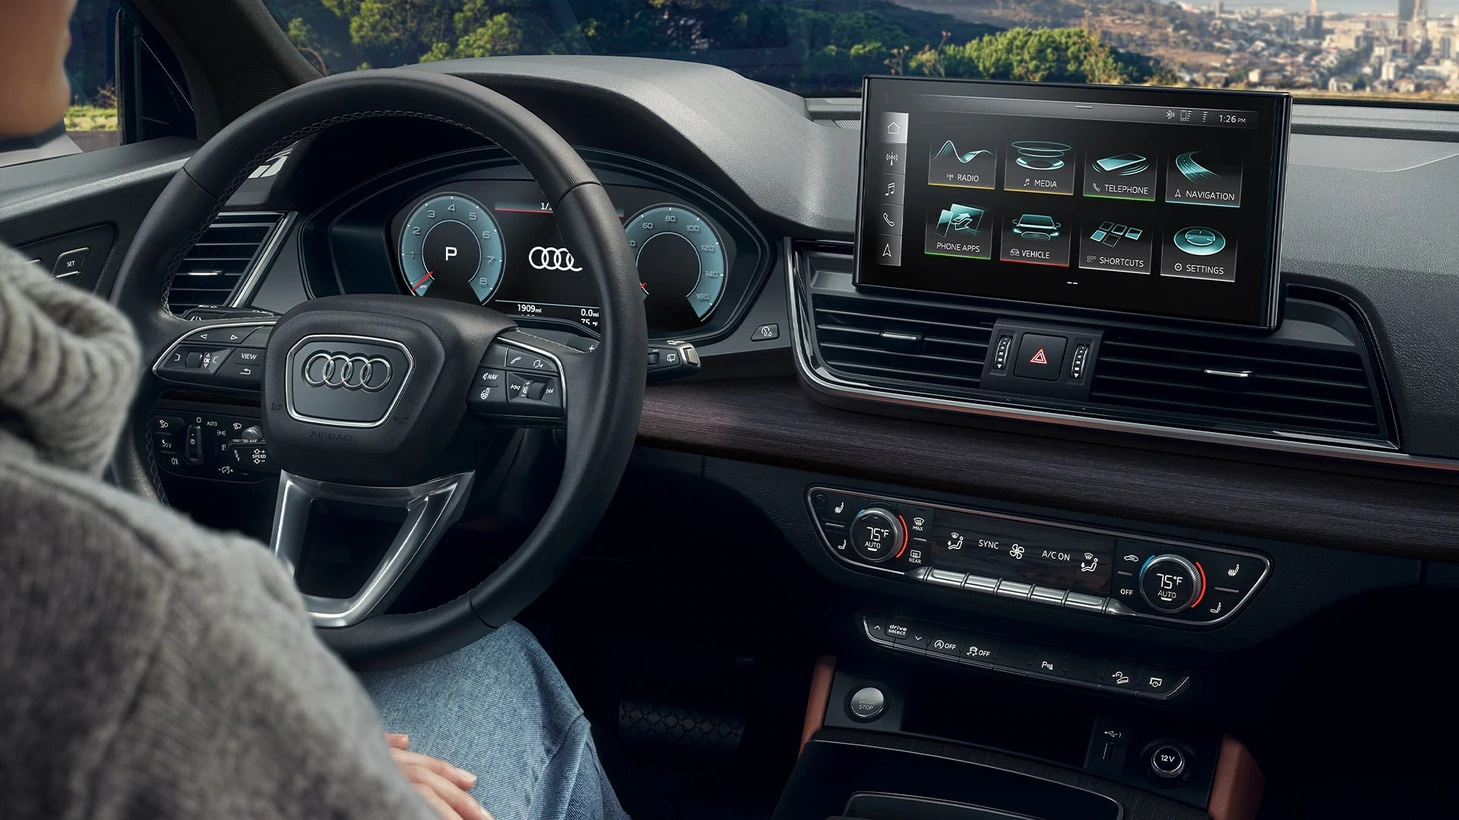 2021 Audi Q5 with available Audi virtual cockpit and 12.3-inch instrument display